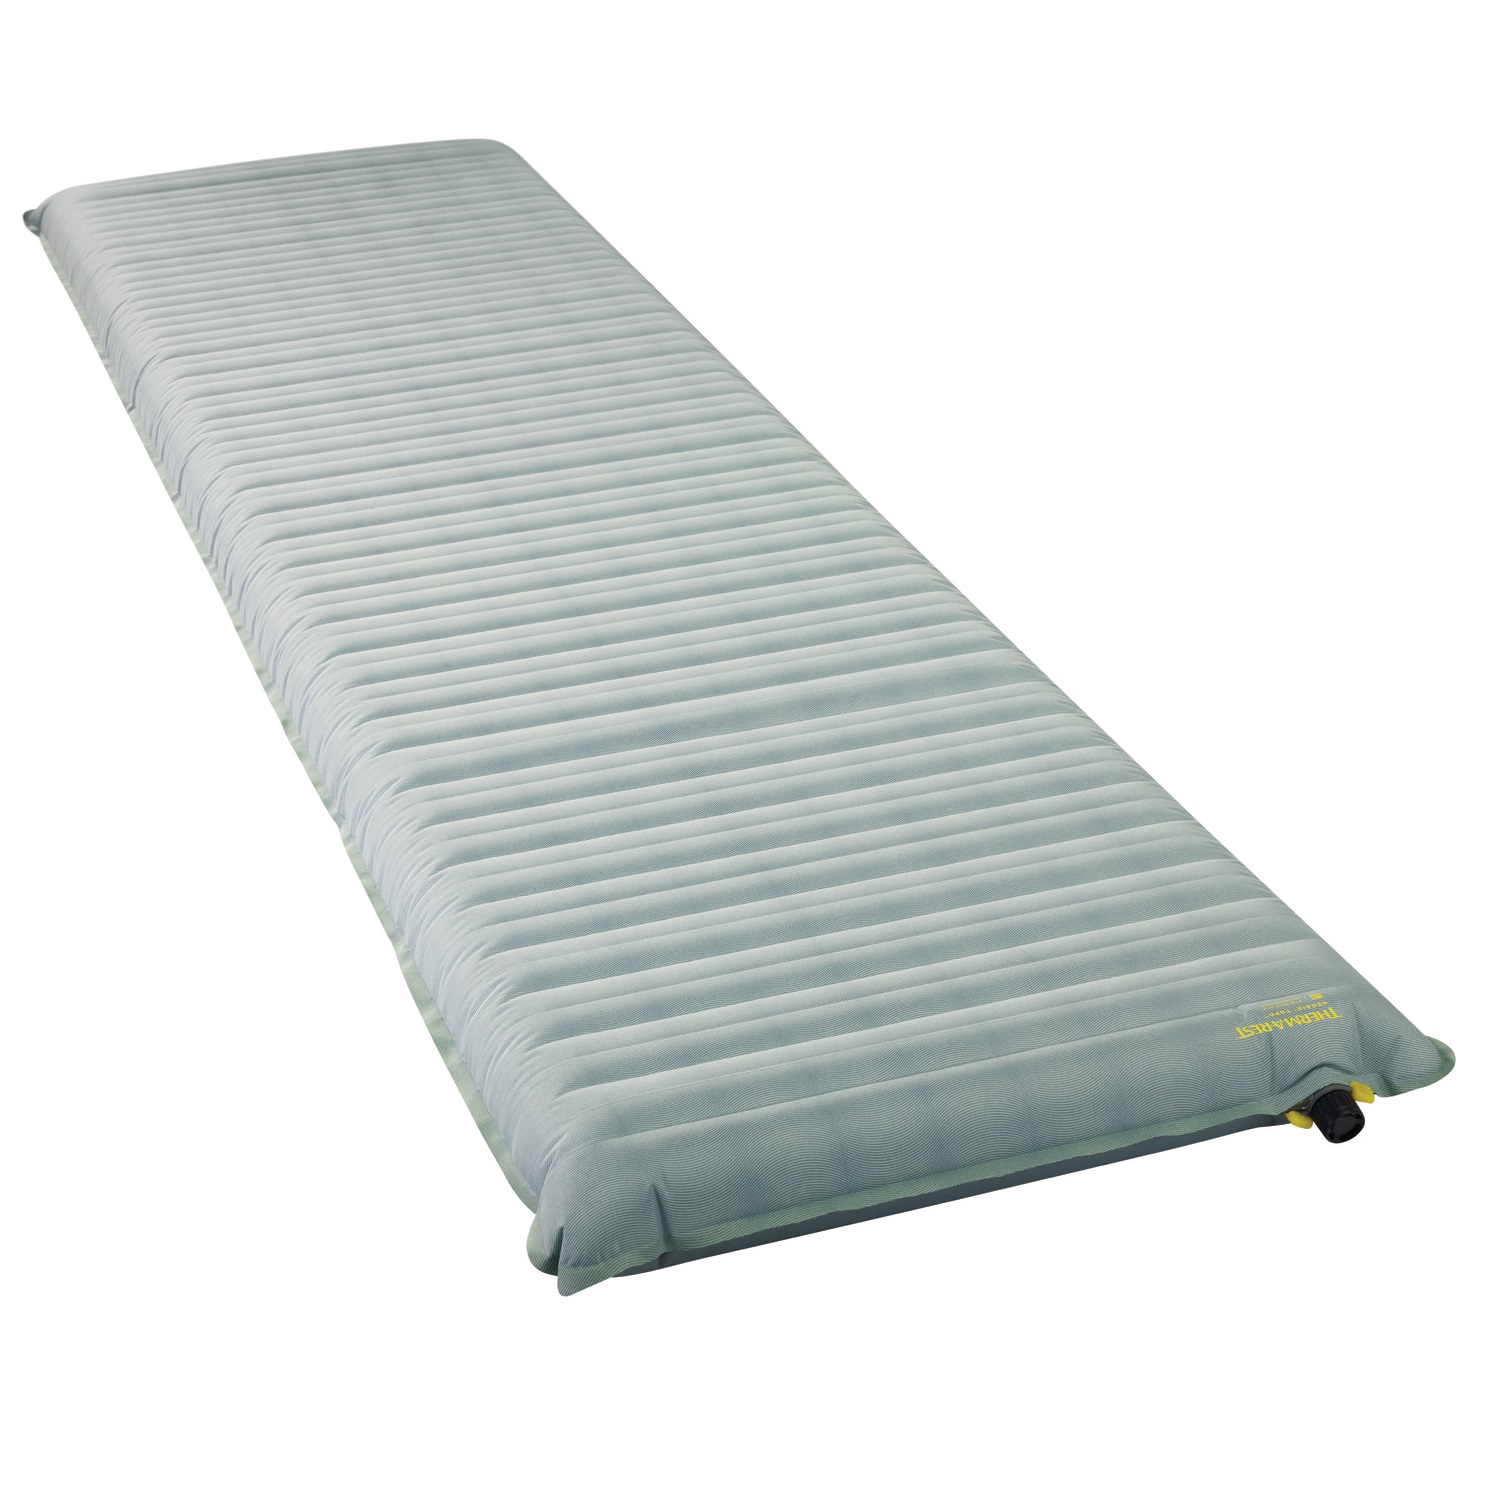 Therm-a-rest Neoair Topo Print Regular